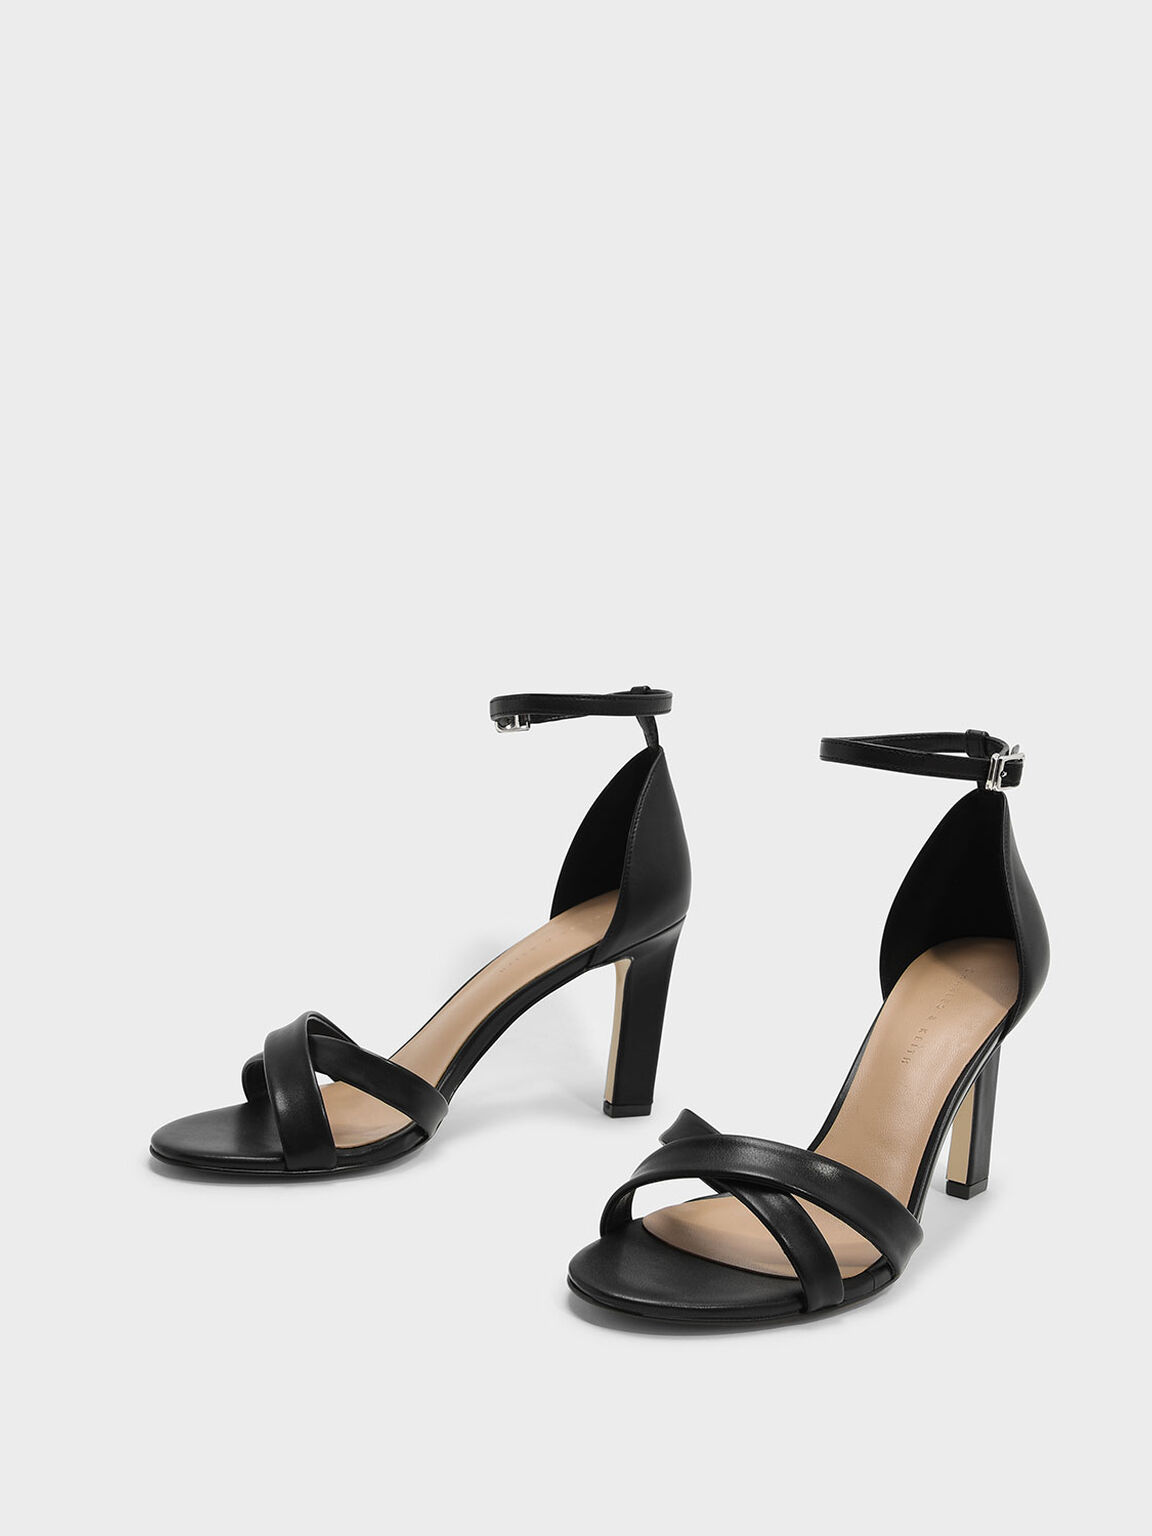 Ankle Strap Criss Cross Heeled Sandals, Black, hi-res